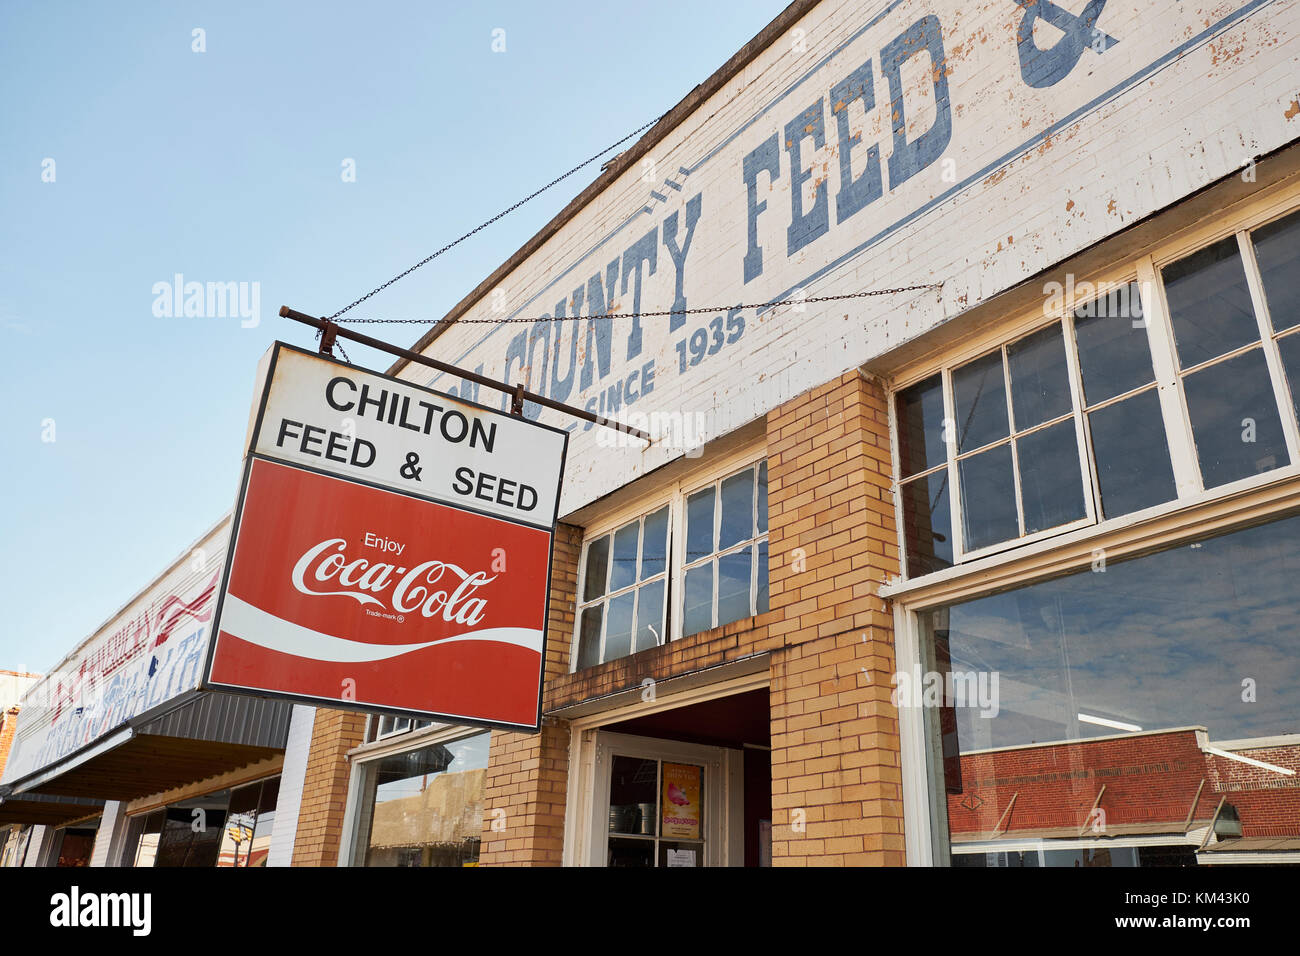 Rural Feed and Seed store or store front, in Chilton County, Clanton Alabama, USA. - Stock Image